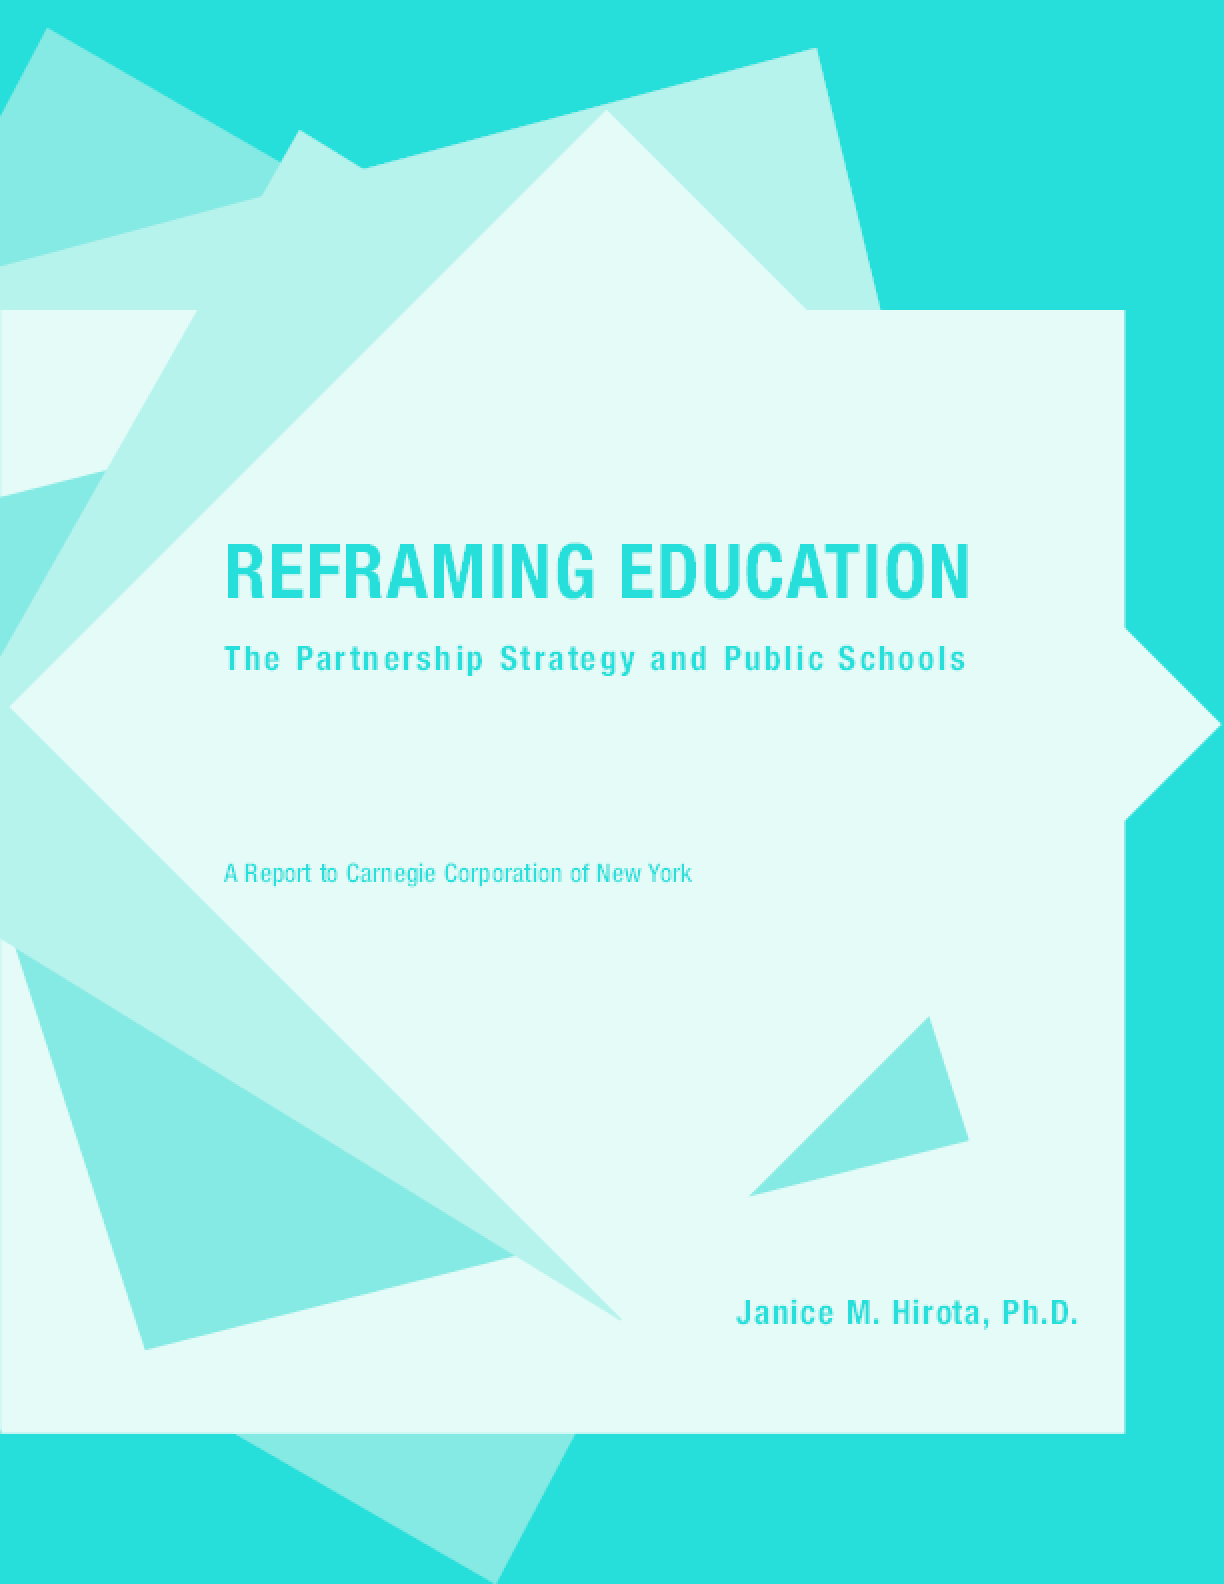 Reframing Education: The Partnership Strategy and Public Schools